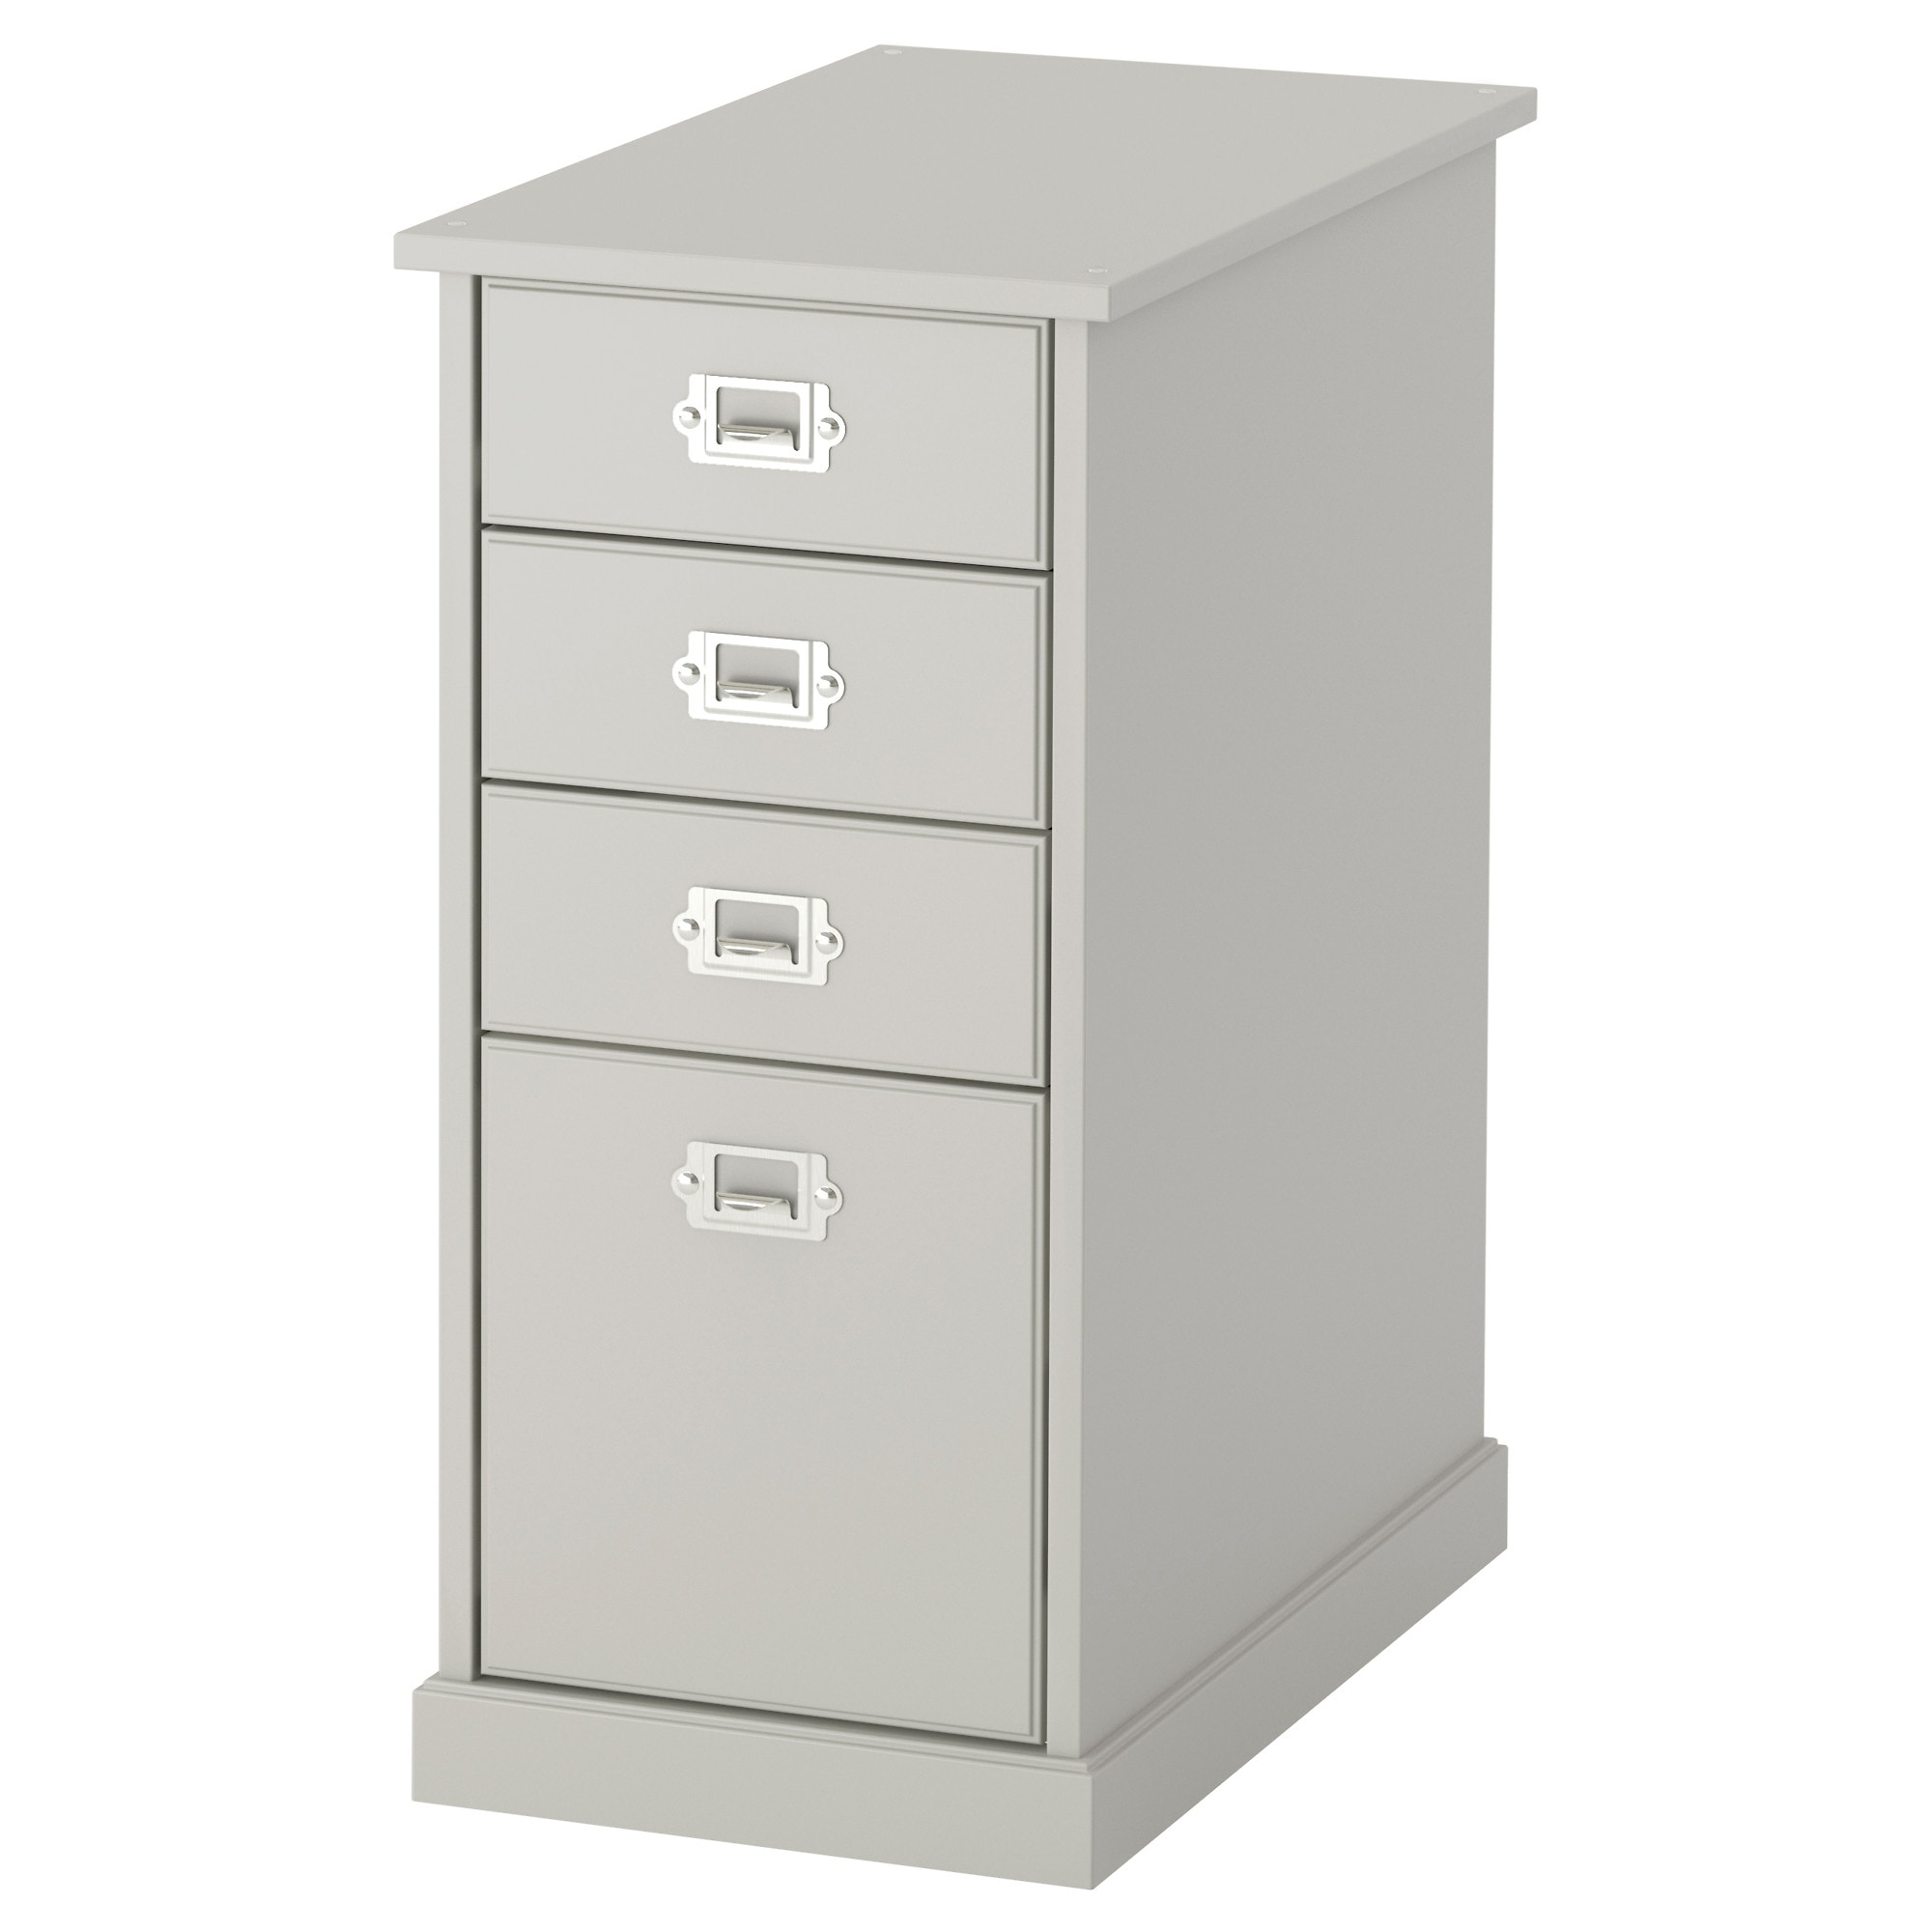 Storage Drawers - IKEA